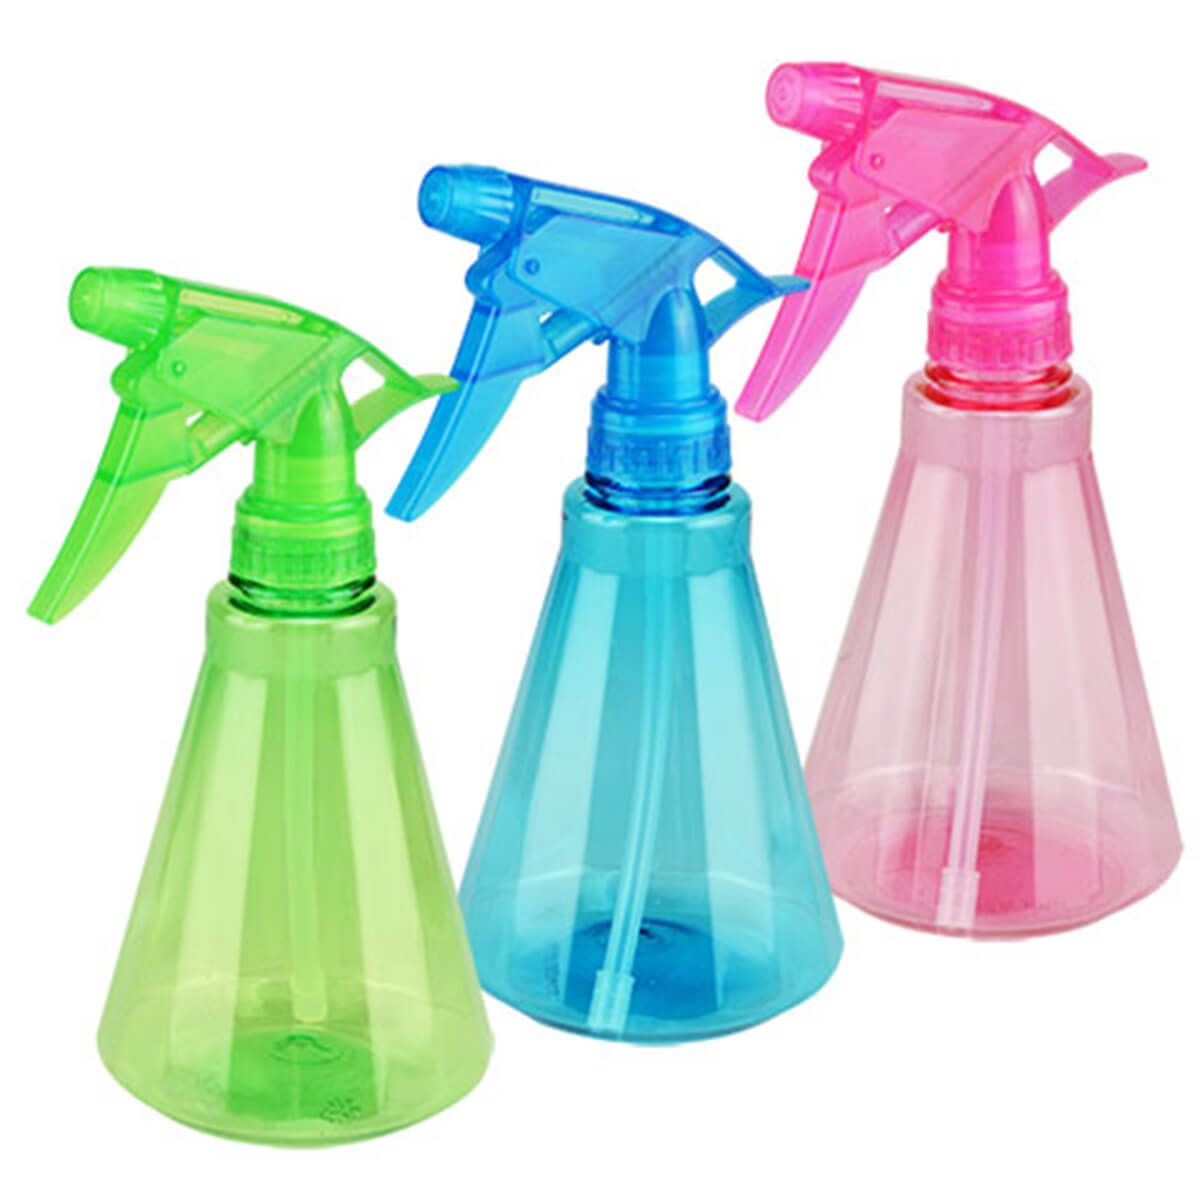 Spray bottle for your vinegar and water cleaning solution